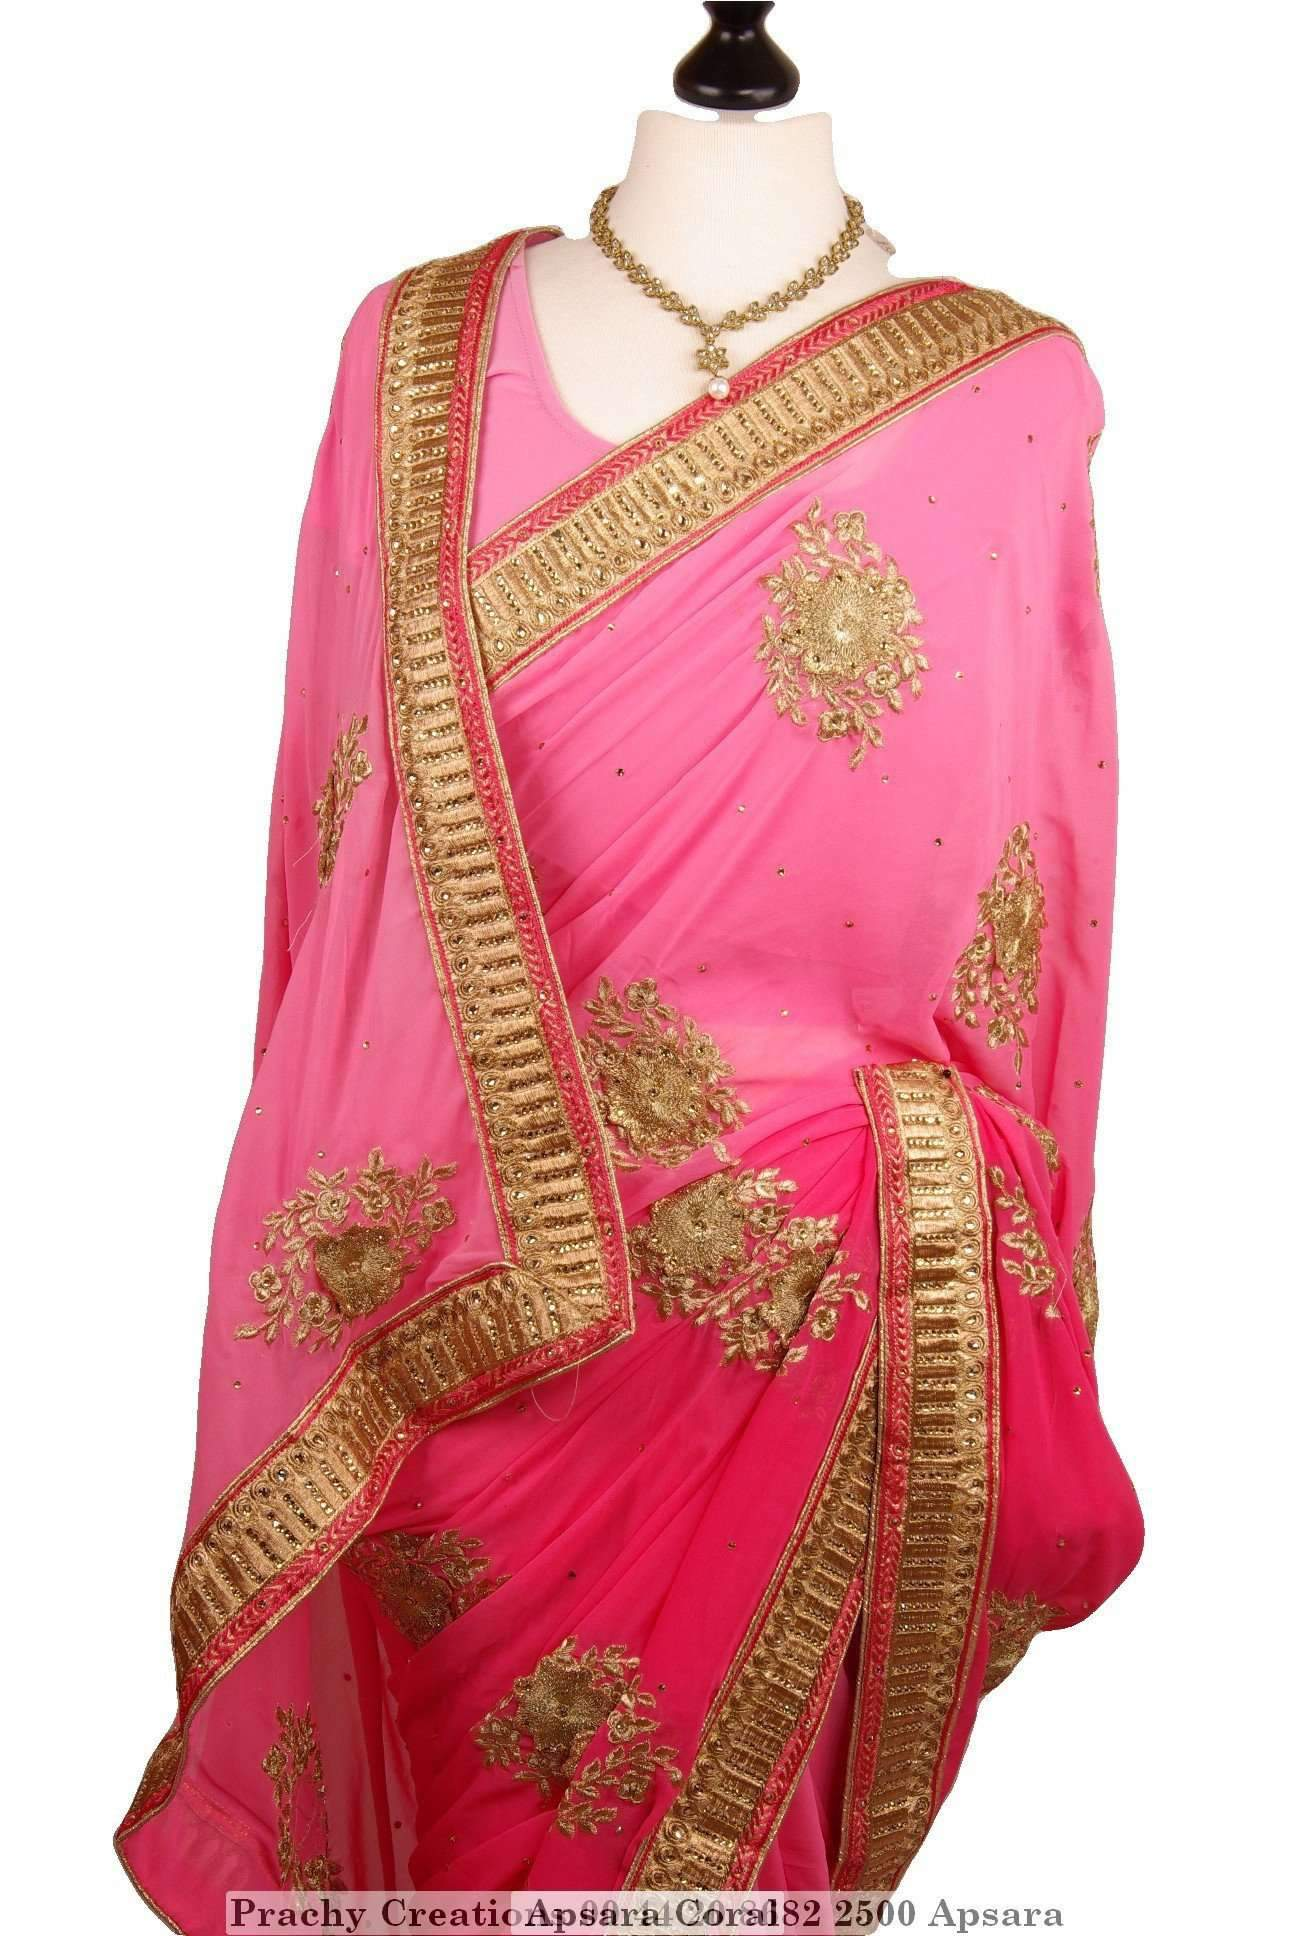 Lightly Shaded saree with gold border and flower motifs - Apsara - Prachy Creations